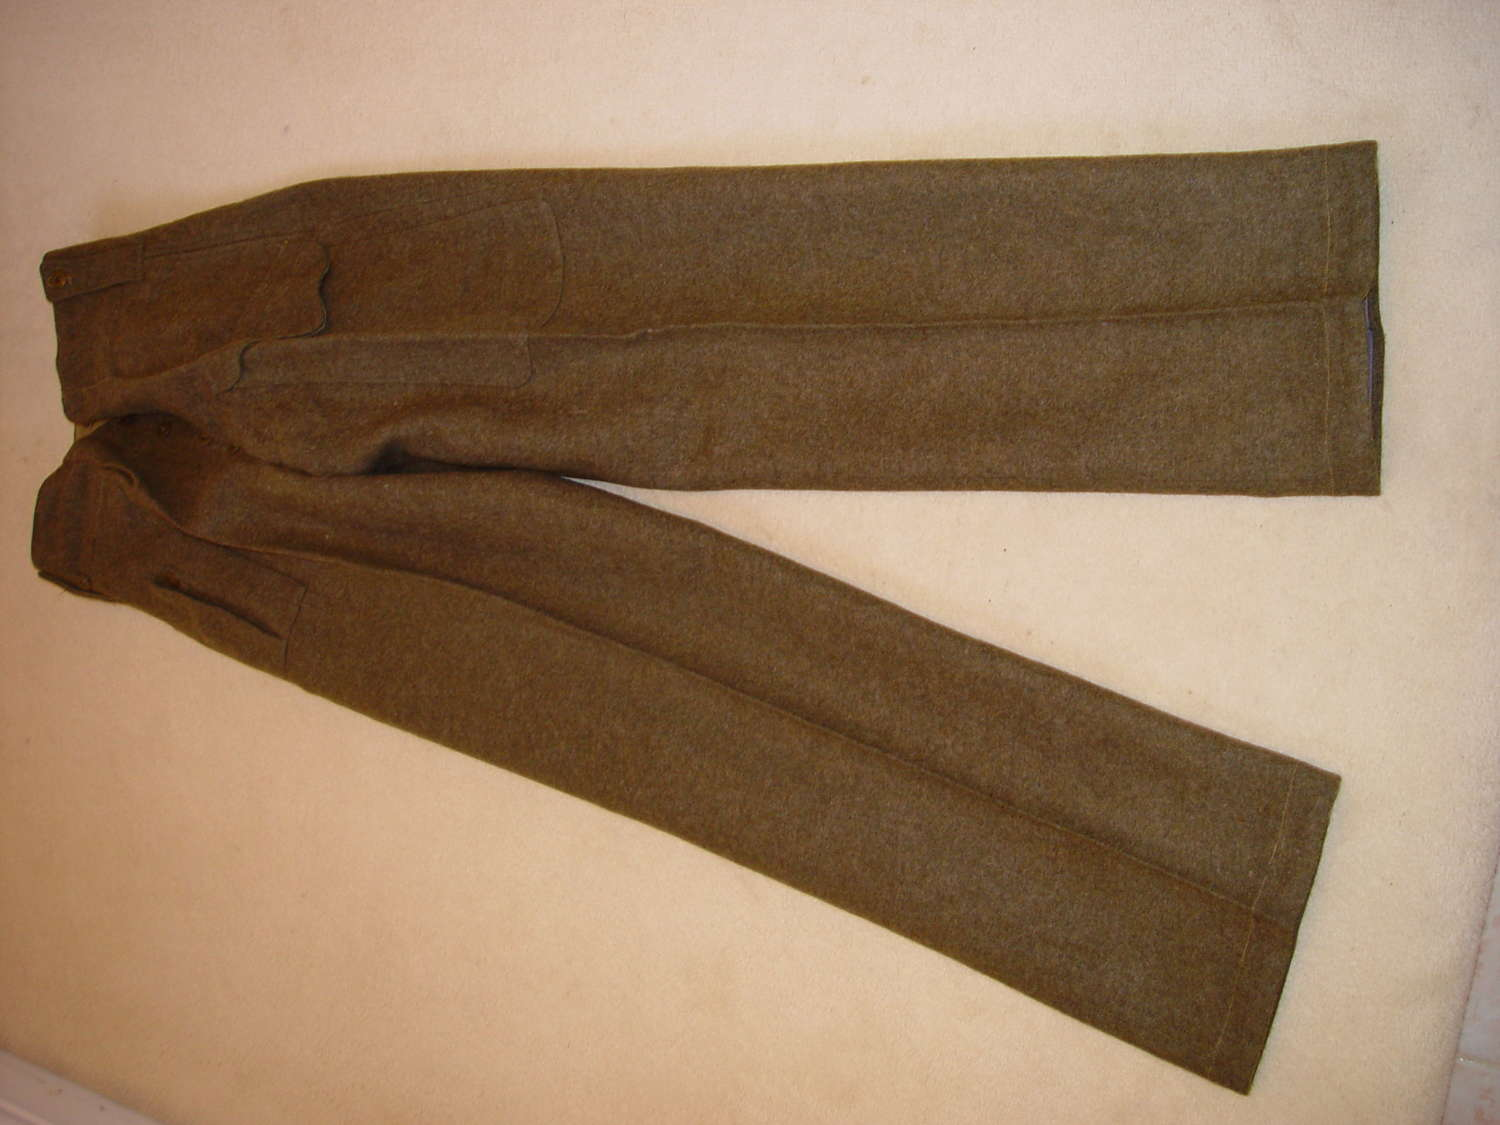 Canadian Army battledress trousers